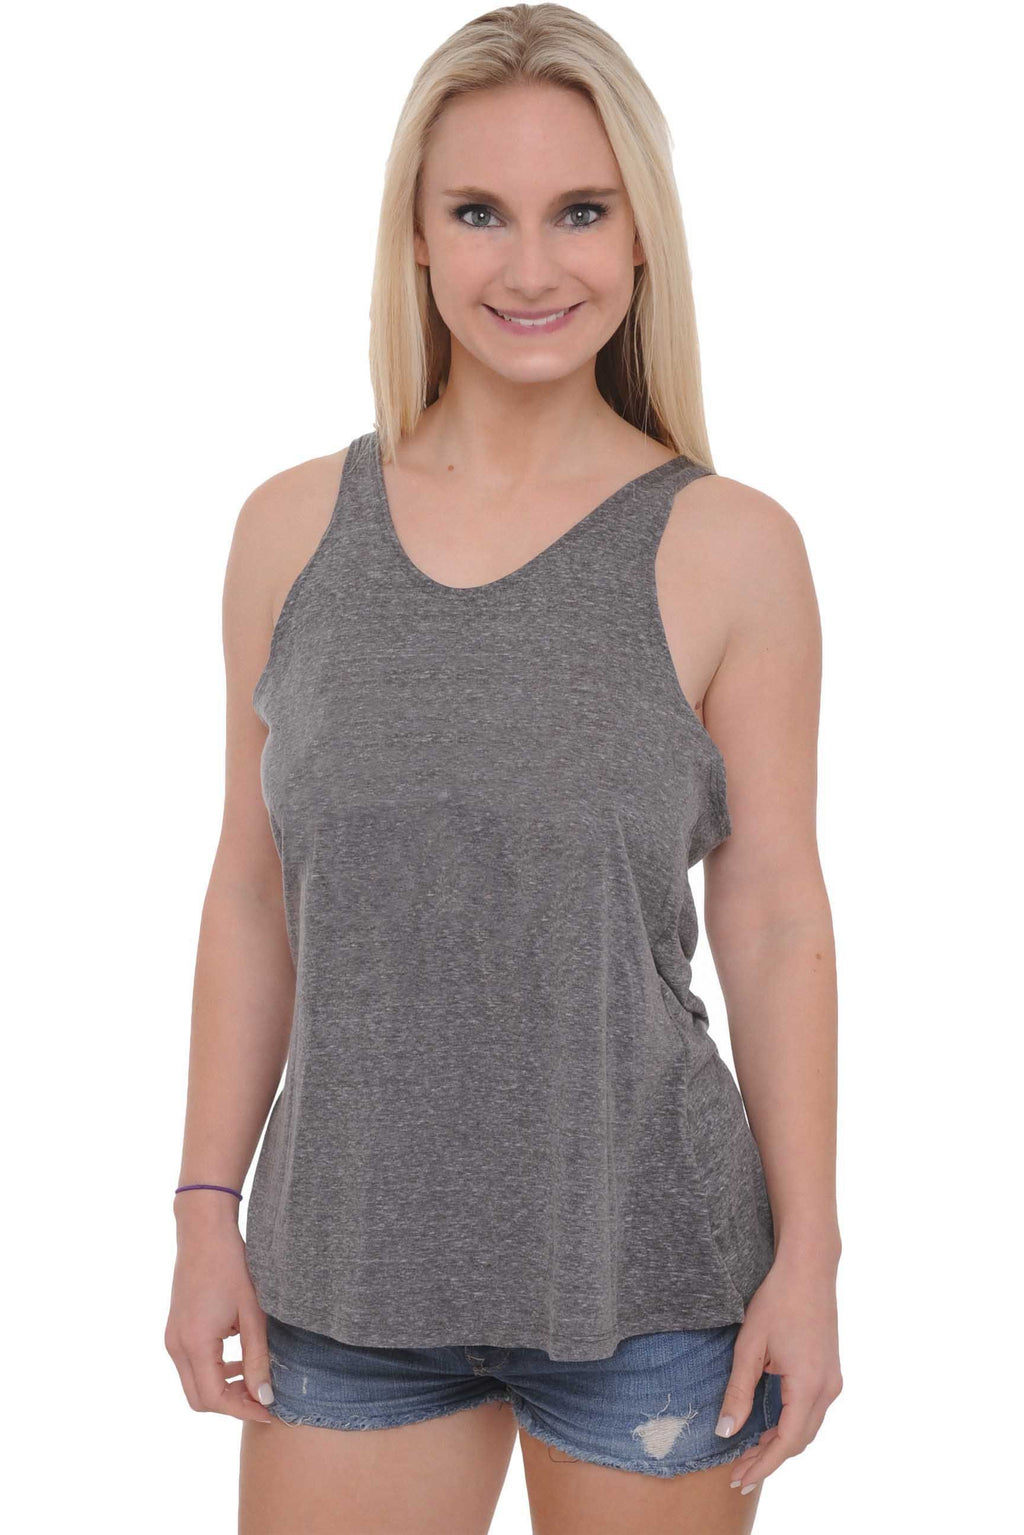 Women's Tank Top Tied Racer Back